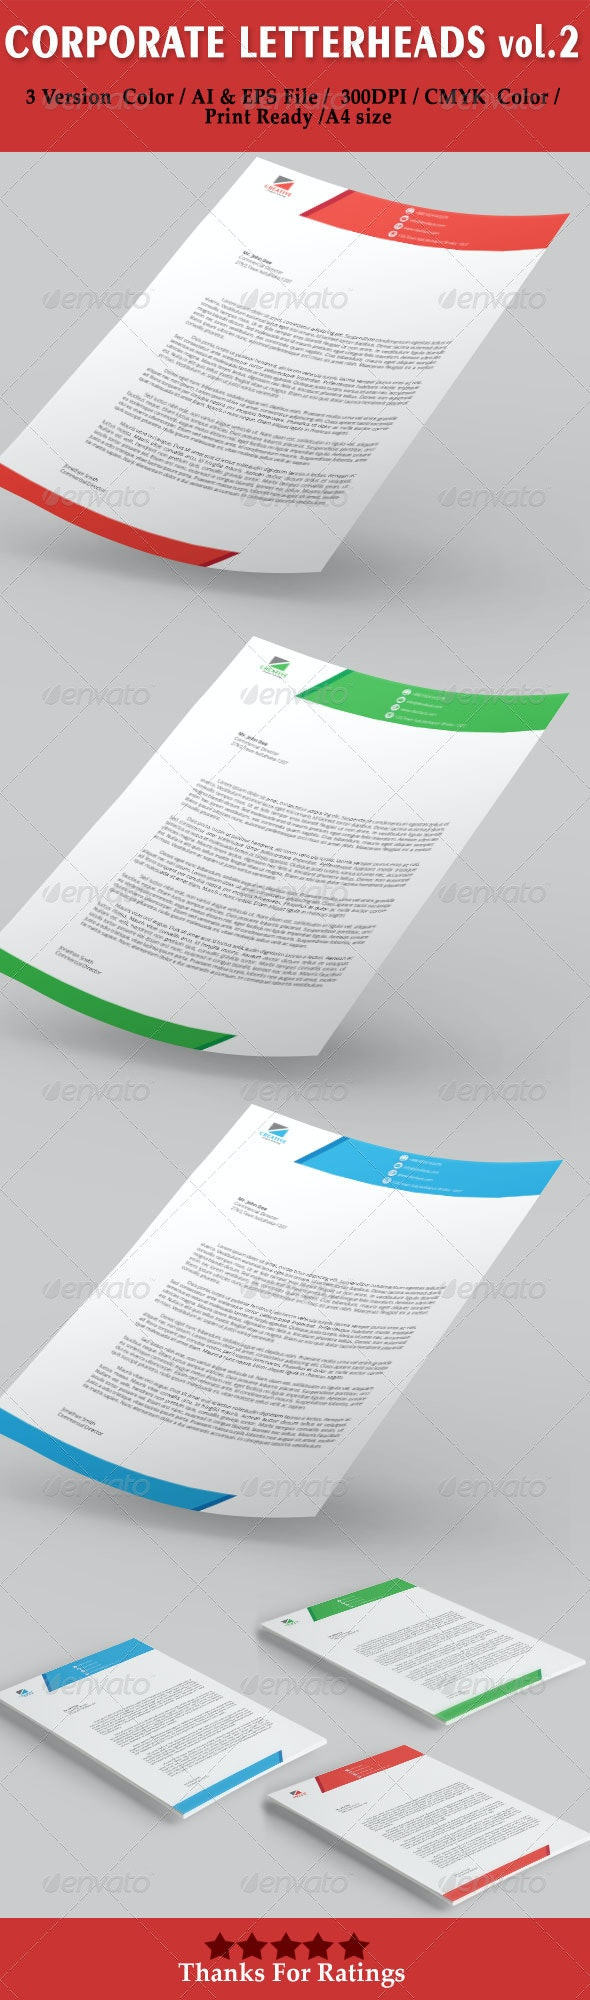 Corporate Letterheads vol.2 - Stationery Print Templates